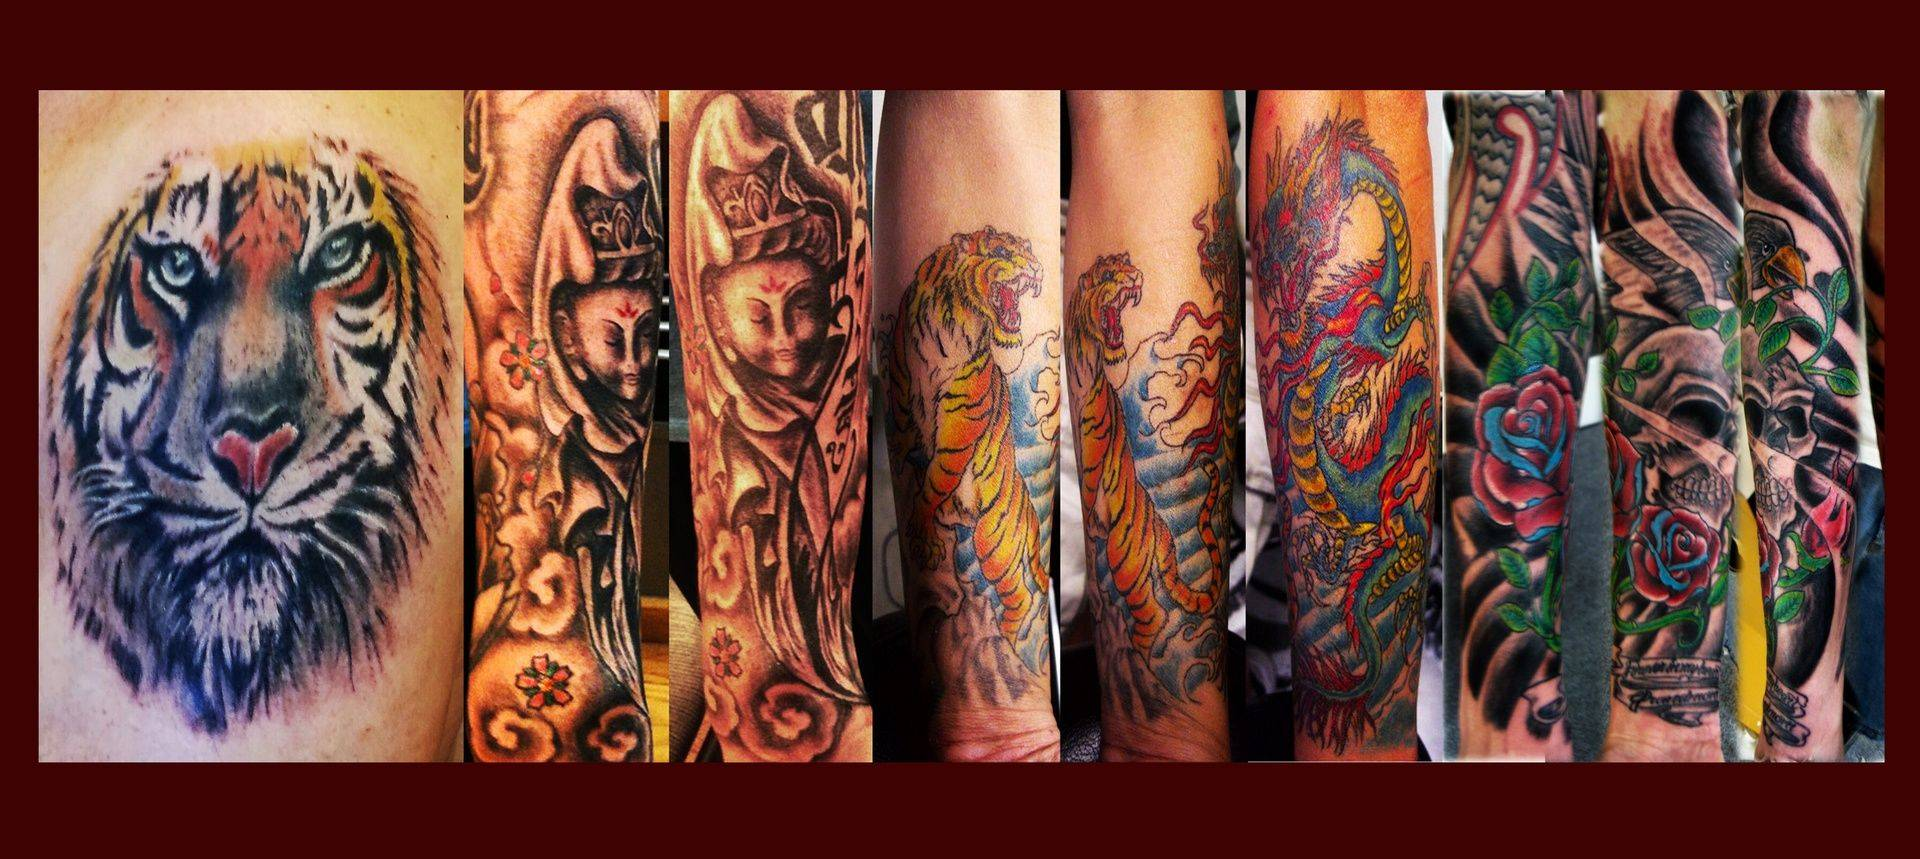 collage tattoo by Ruben